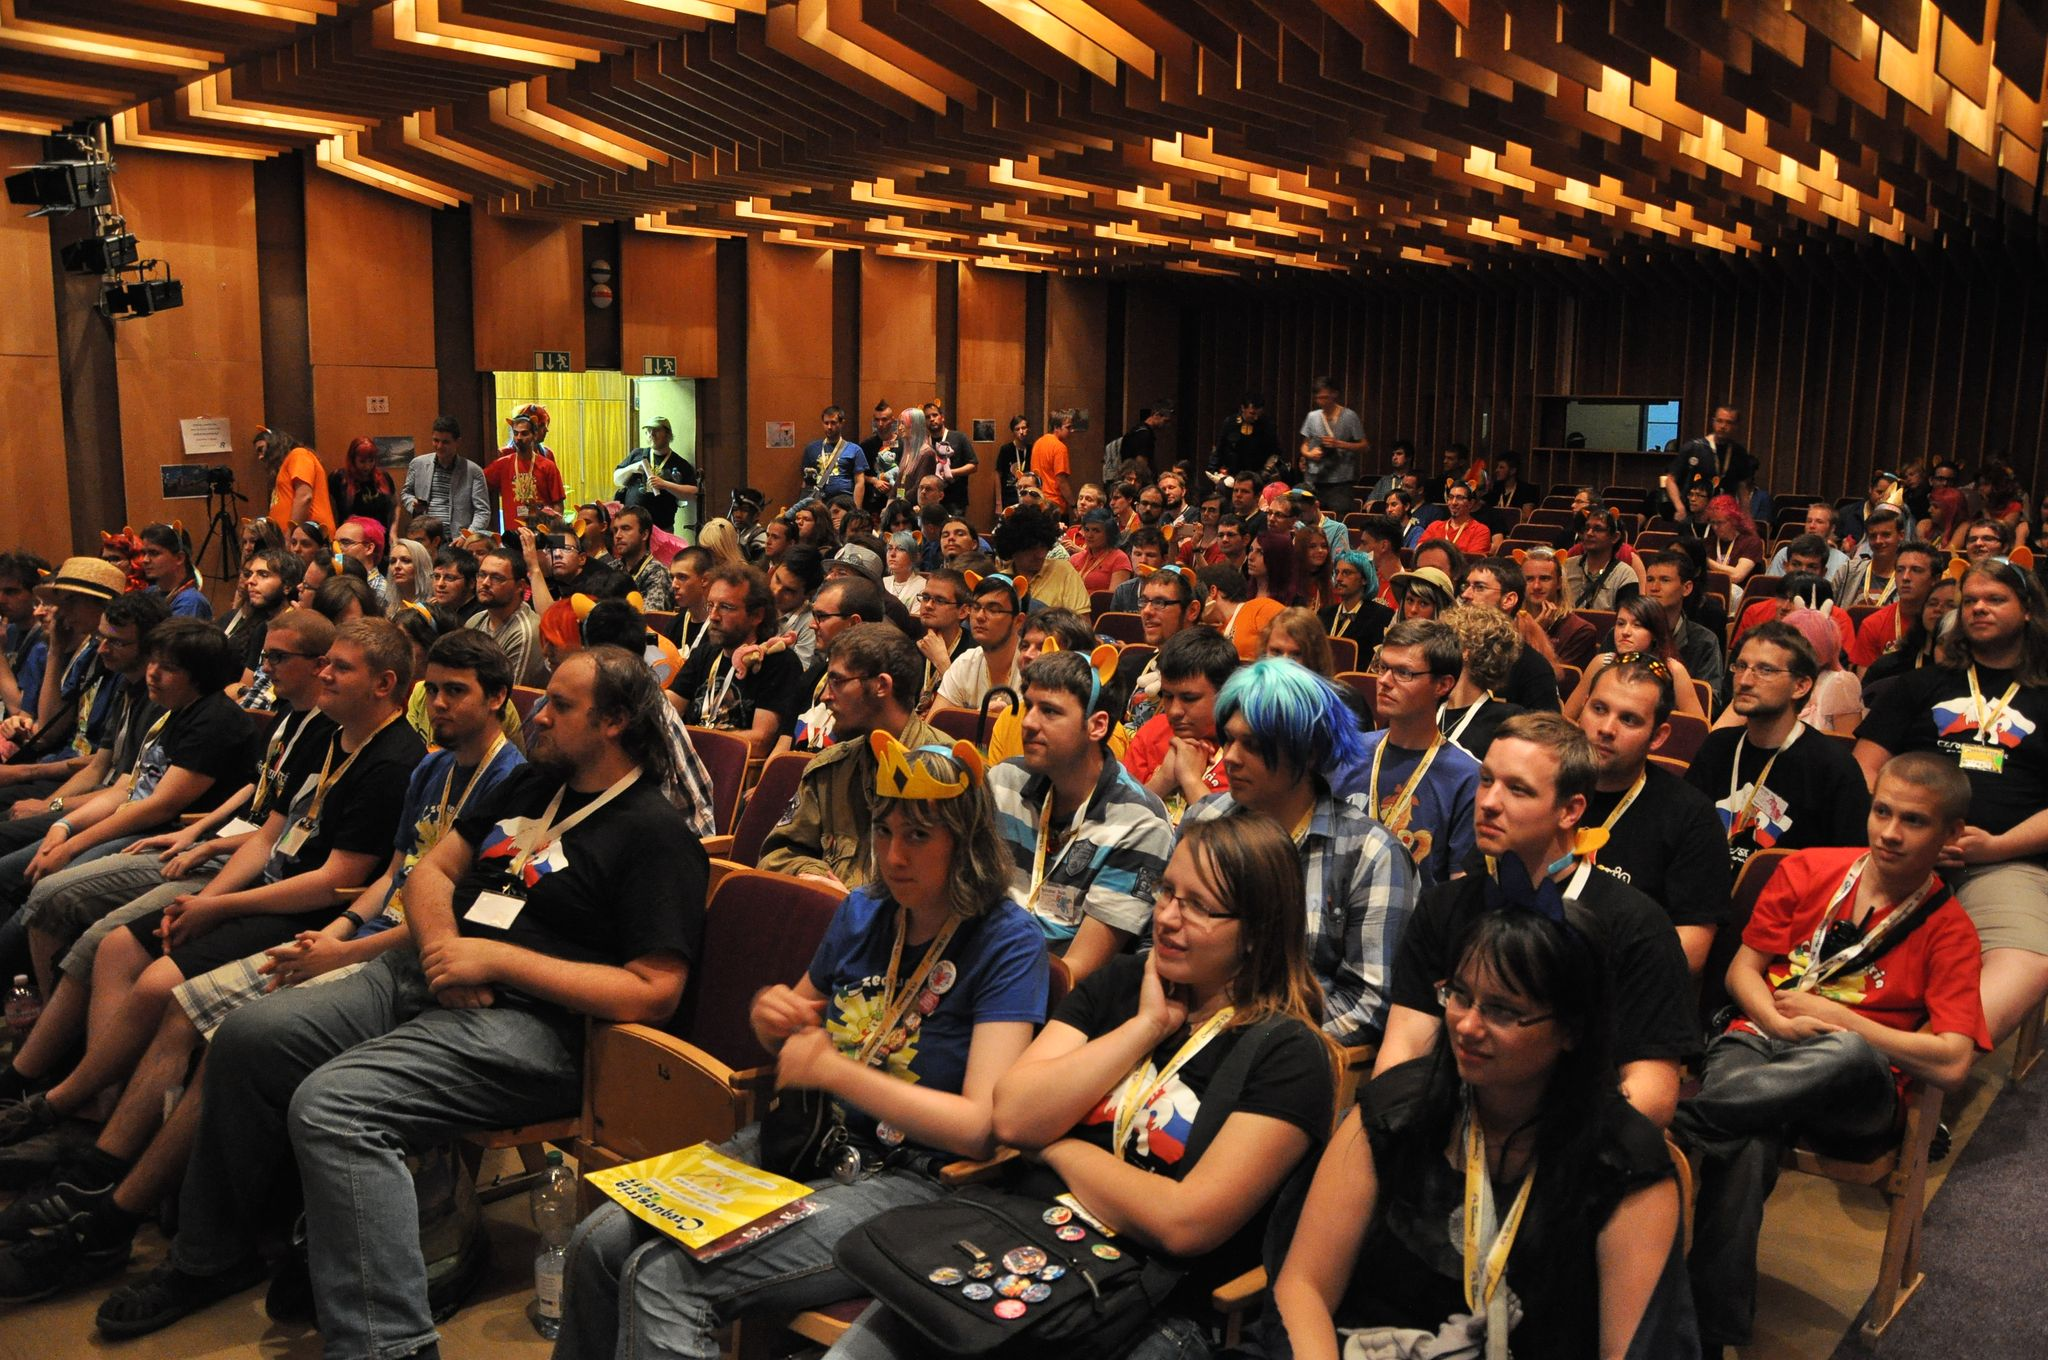 Czequestria 2015 - Mane Hall; photo by Michy